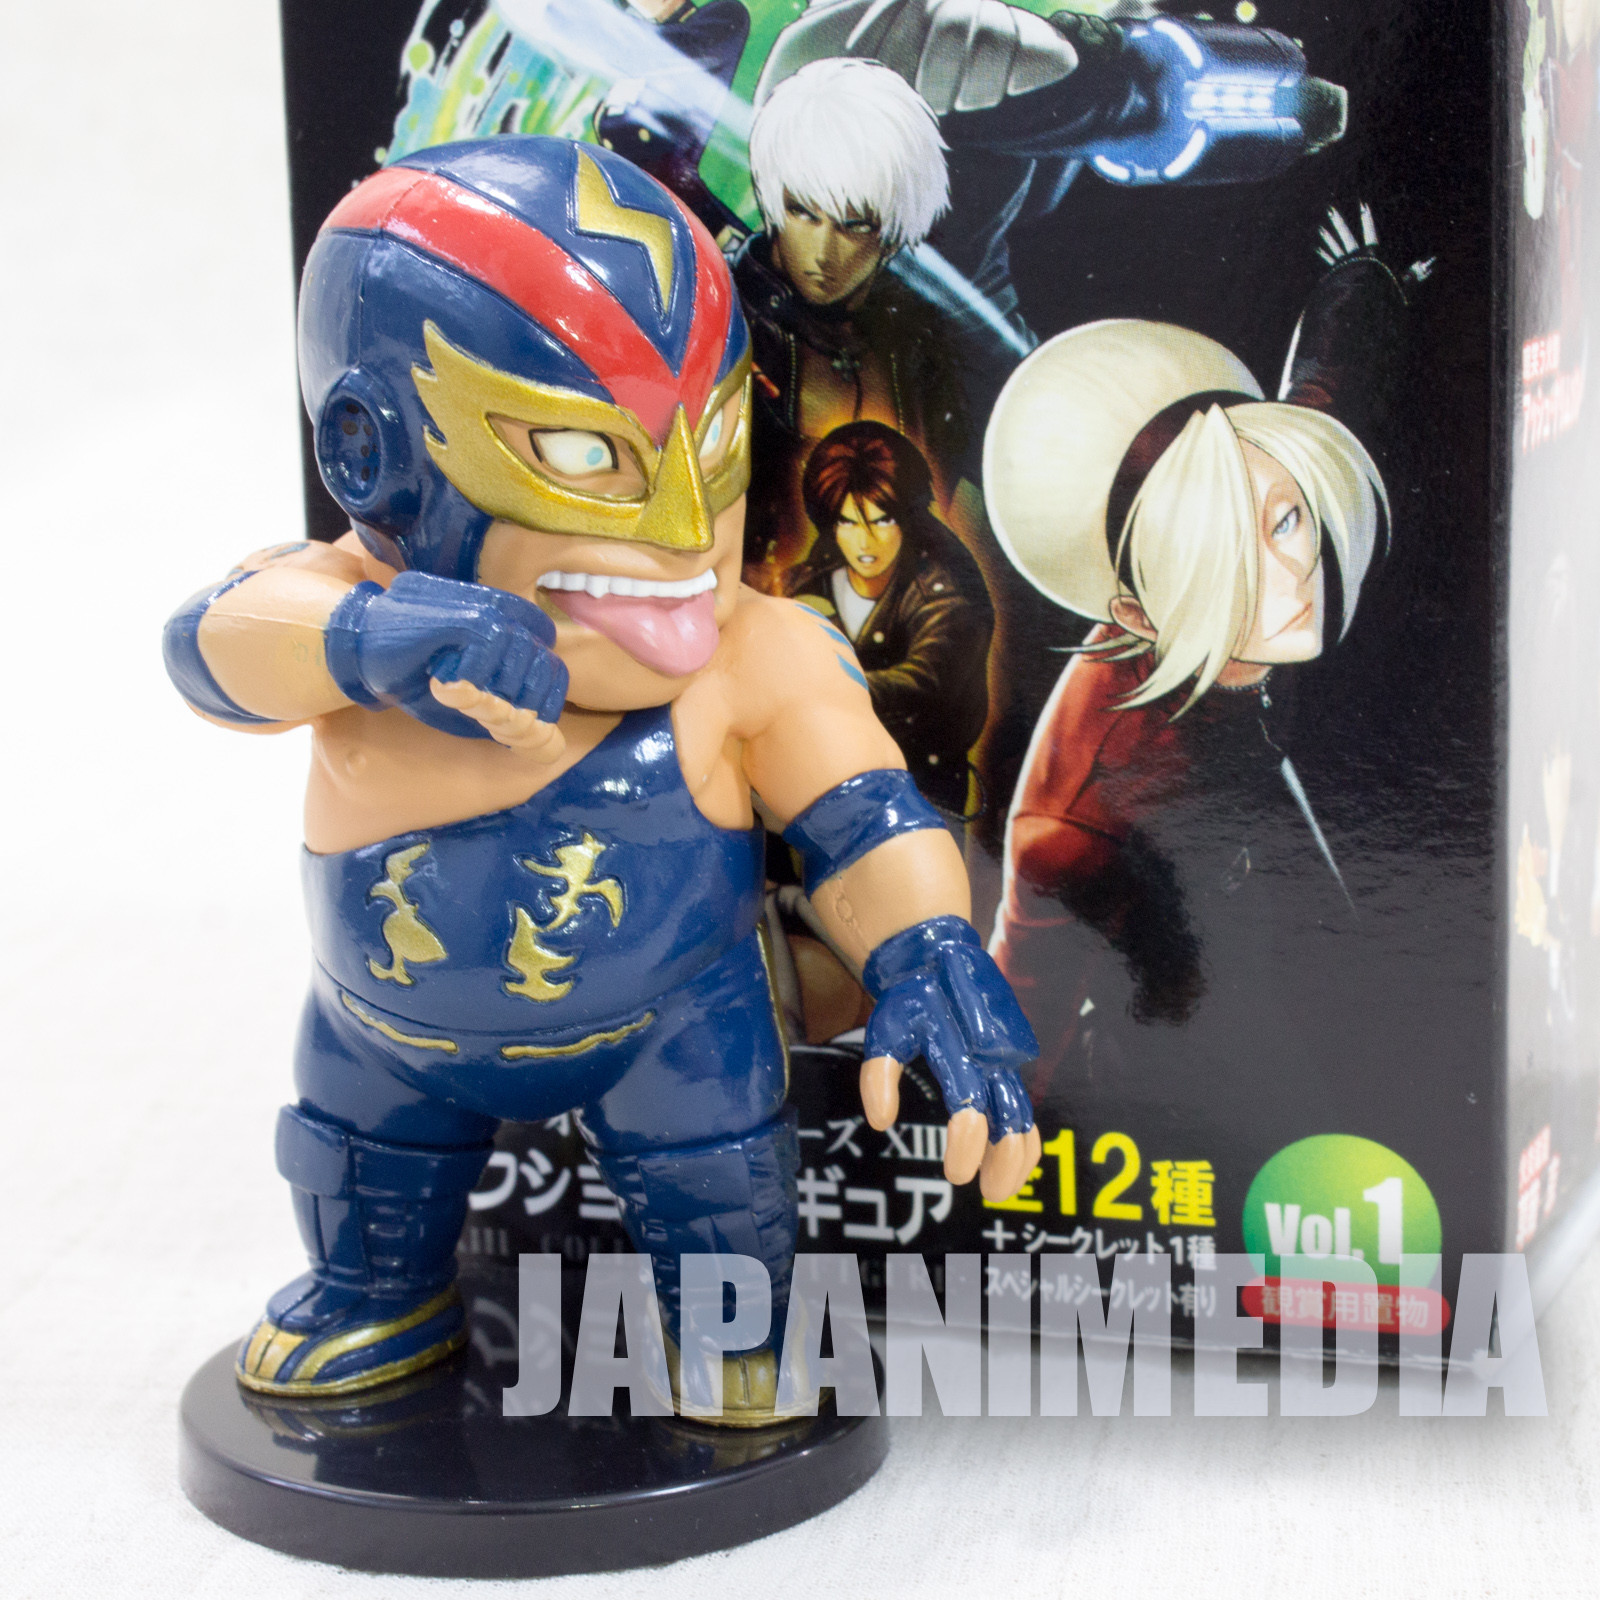 RARE! KOF King of Fighters 8 Fatal Fury Raiden Collection Figure JAPAN SNK.